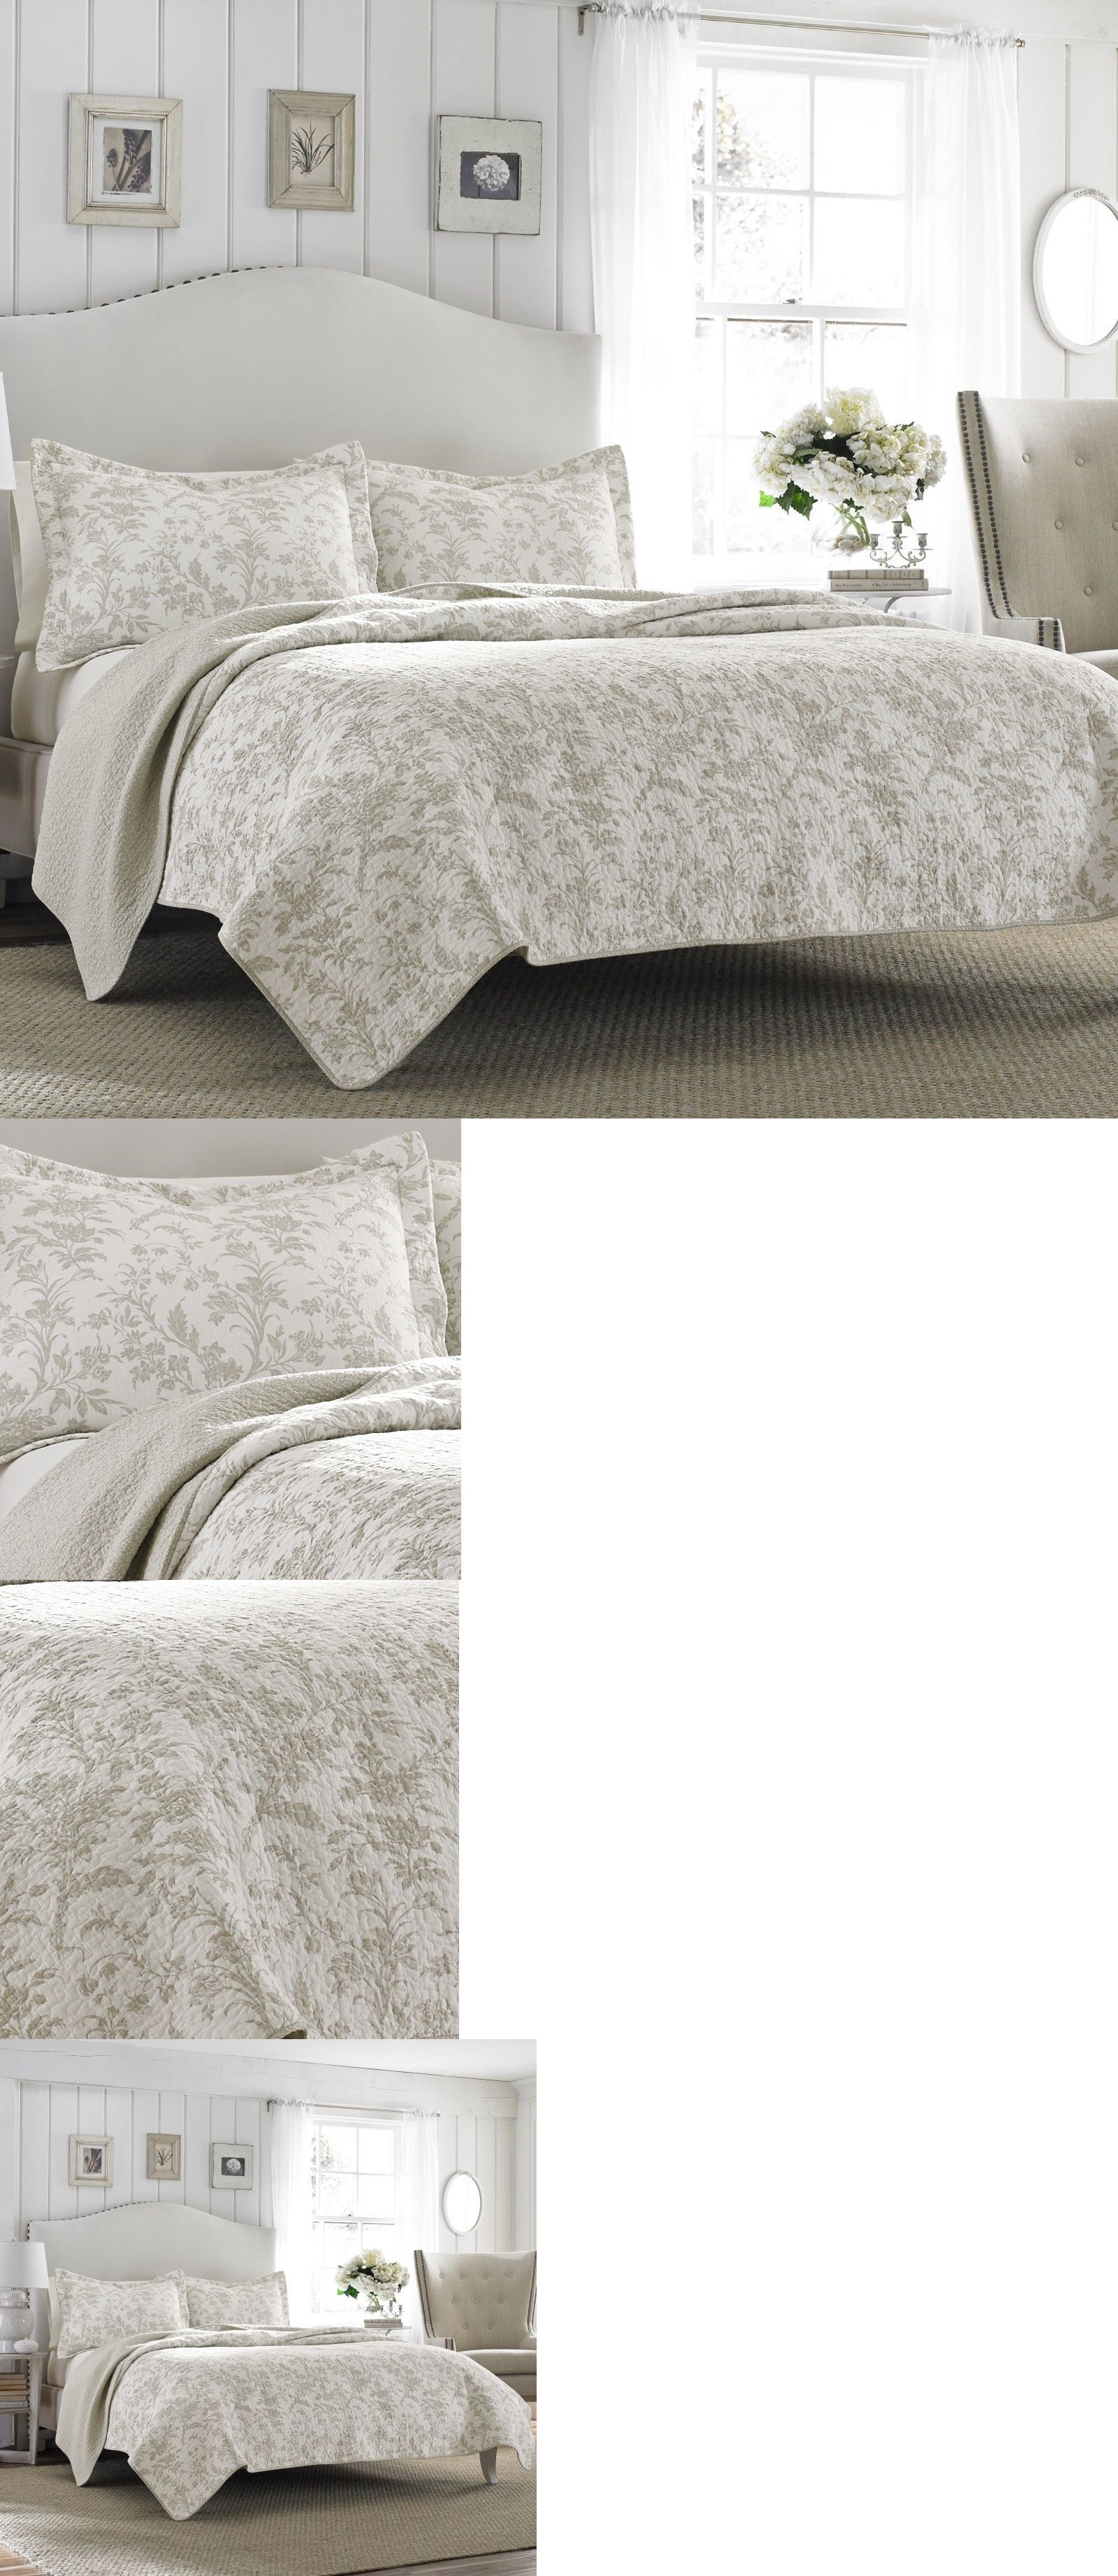 quilts bedspreads and coverlets  laura ashley floral  - quilts bedspreads and coverlets  laura ashley floral bisquitoffwhite reversible coverlet cotton